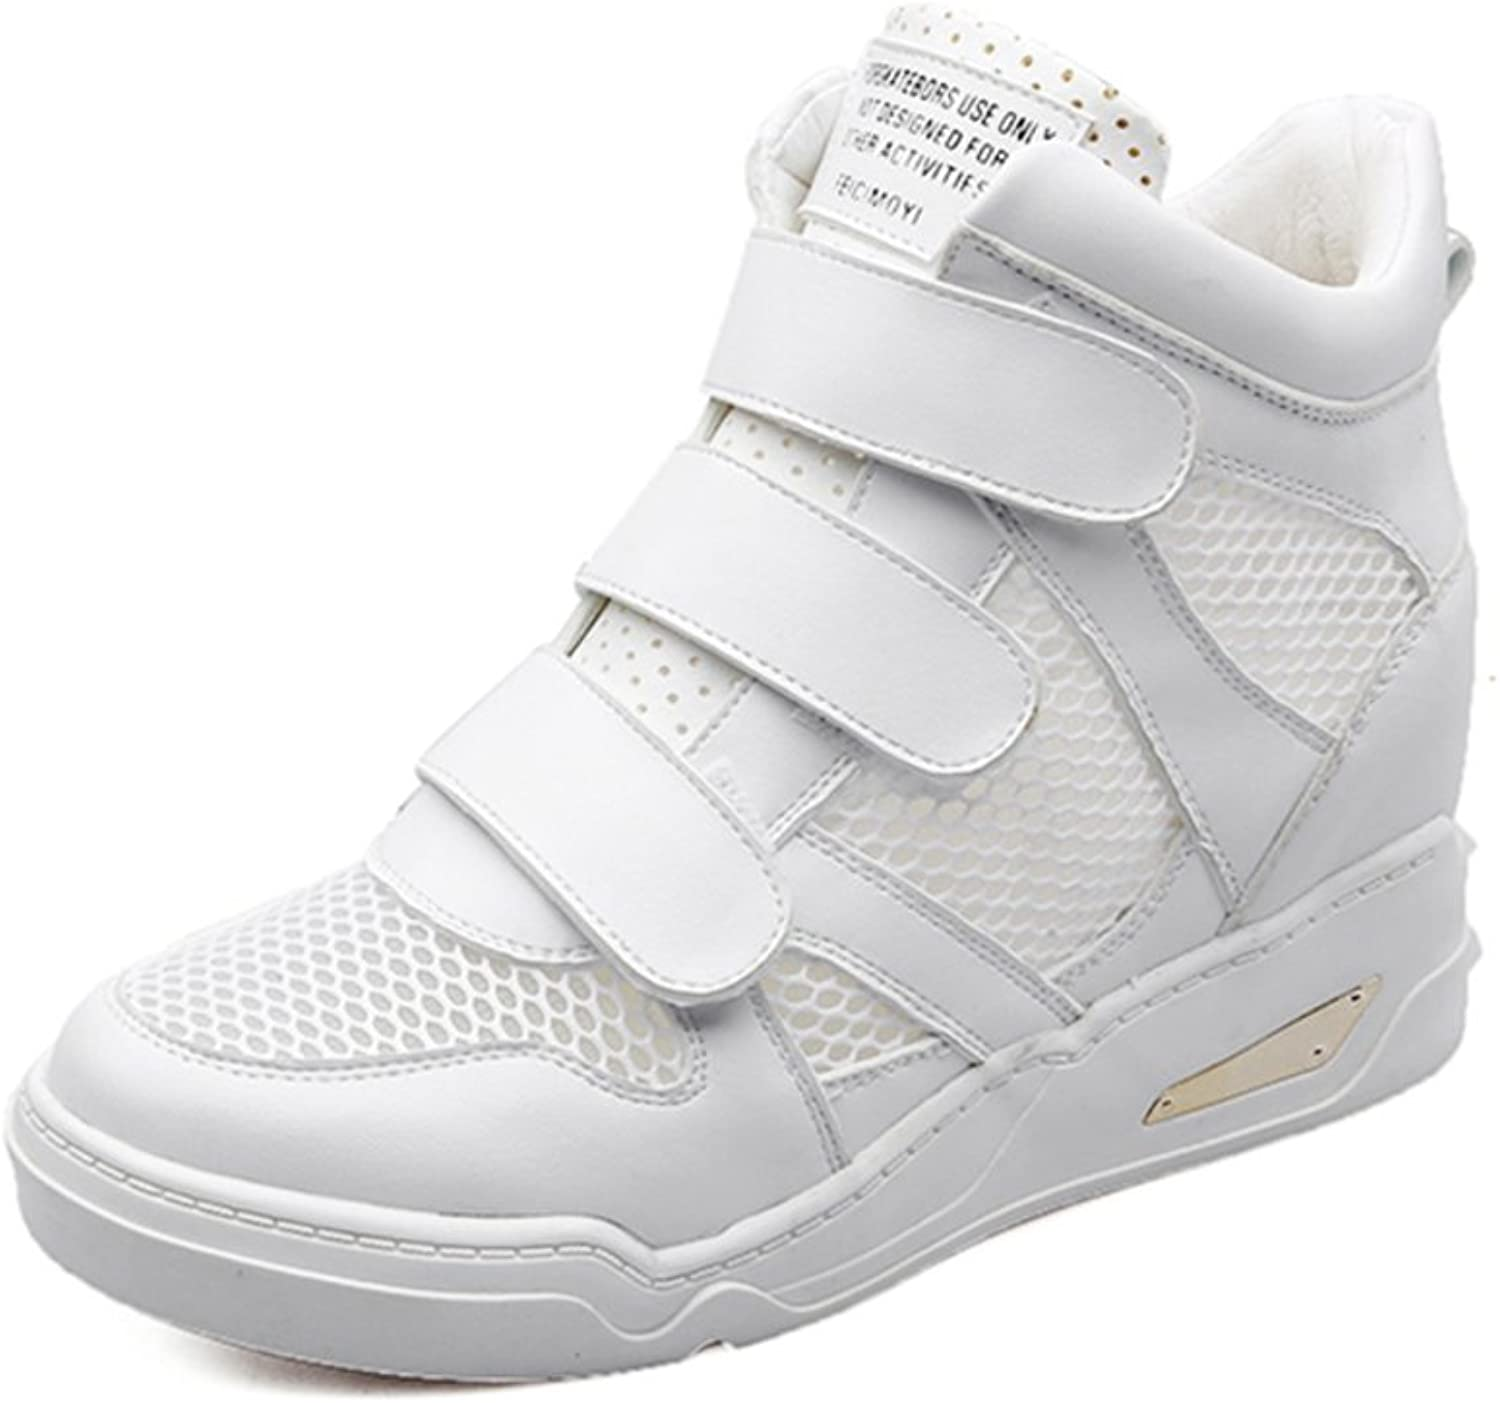 Leather high-top sneakers shoes breathable mesh panel Inside Velcro sneakers increased